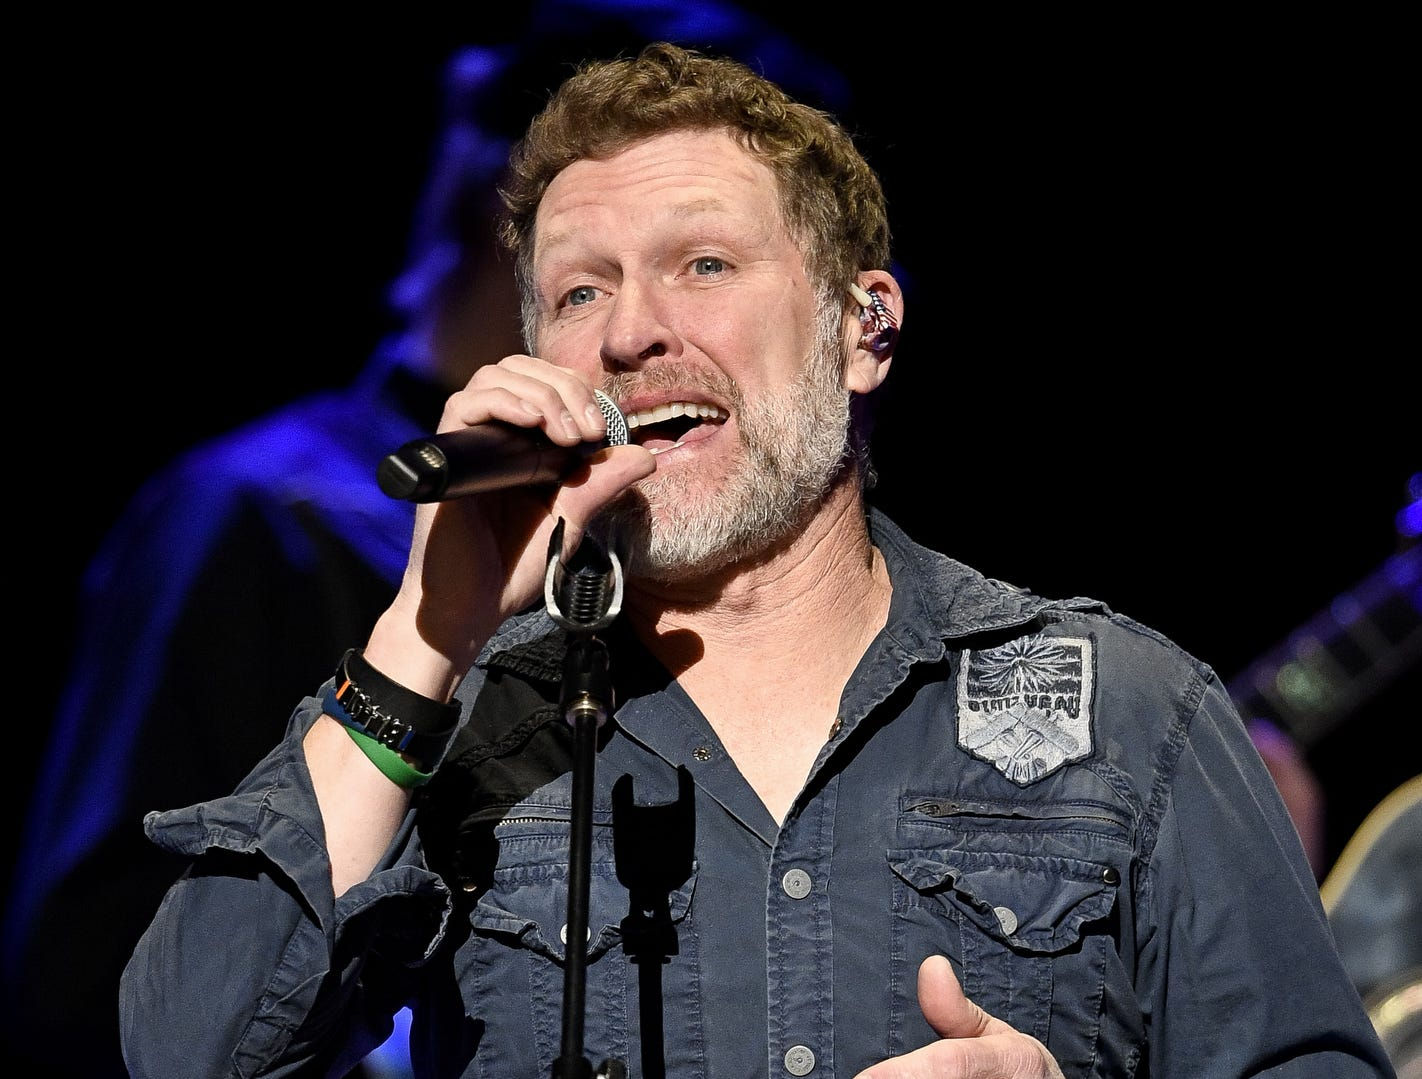 April 23GRAND OLE OPRY WITH CRAIG MORGAN, MORE: 7 p.m. Grand Ole Opry House, $40-$110, opry.com